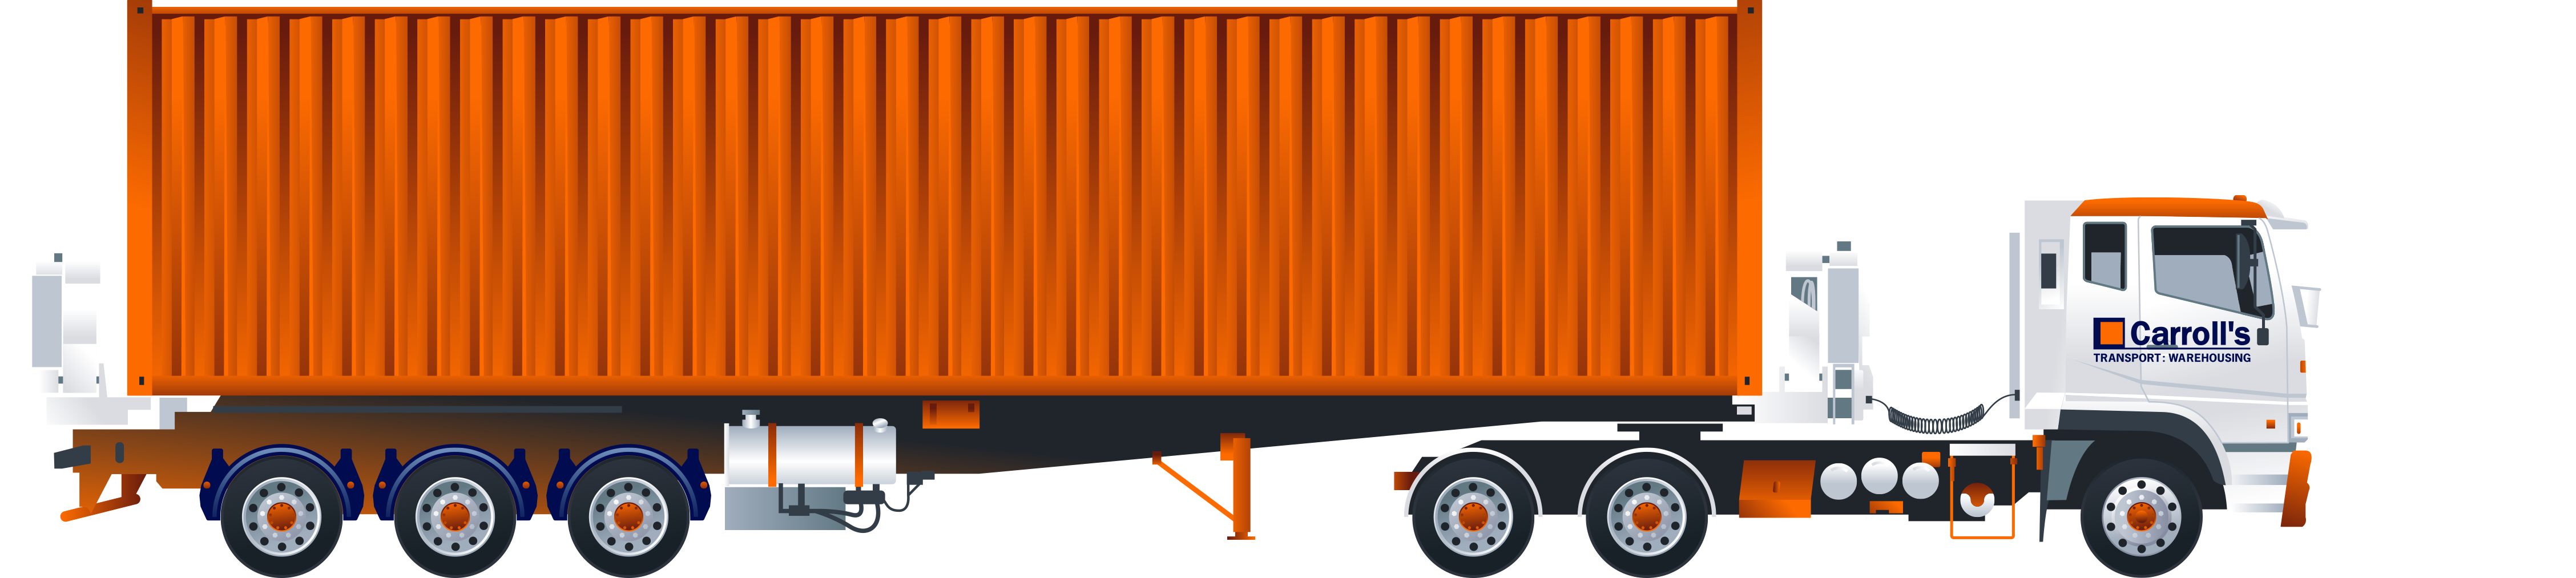 Container Side-loader Trucks